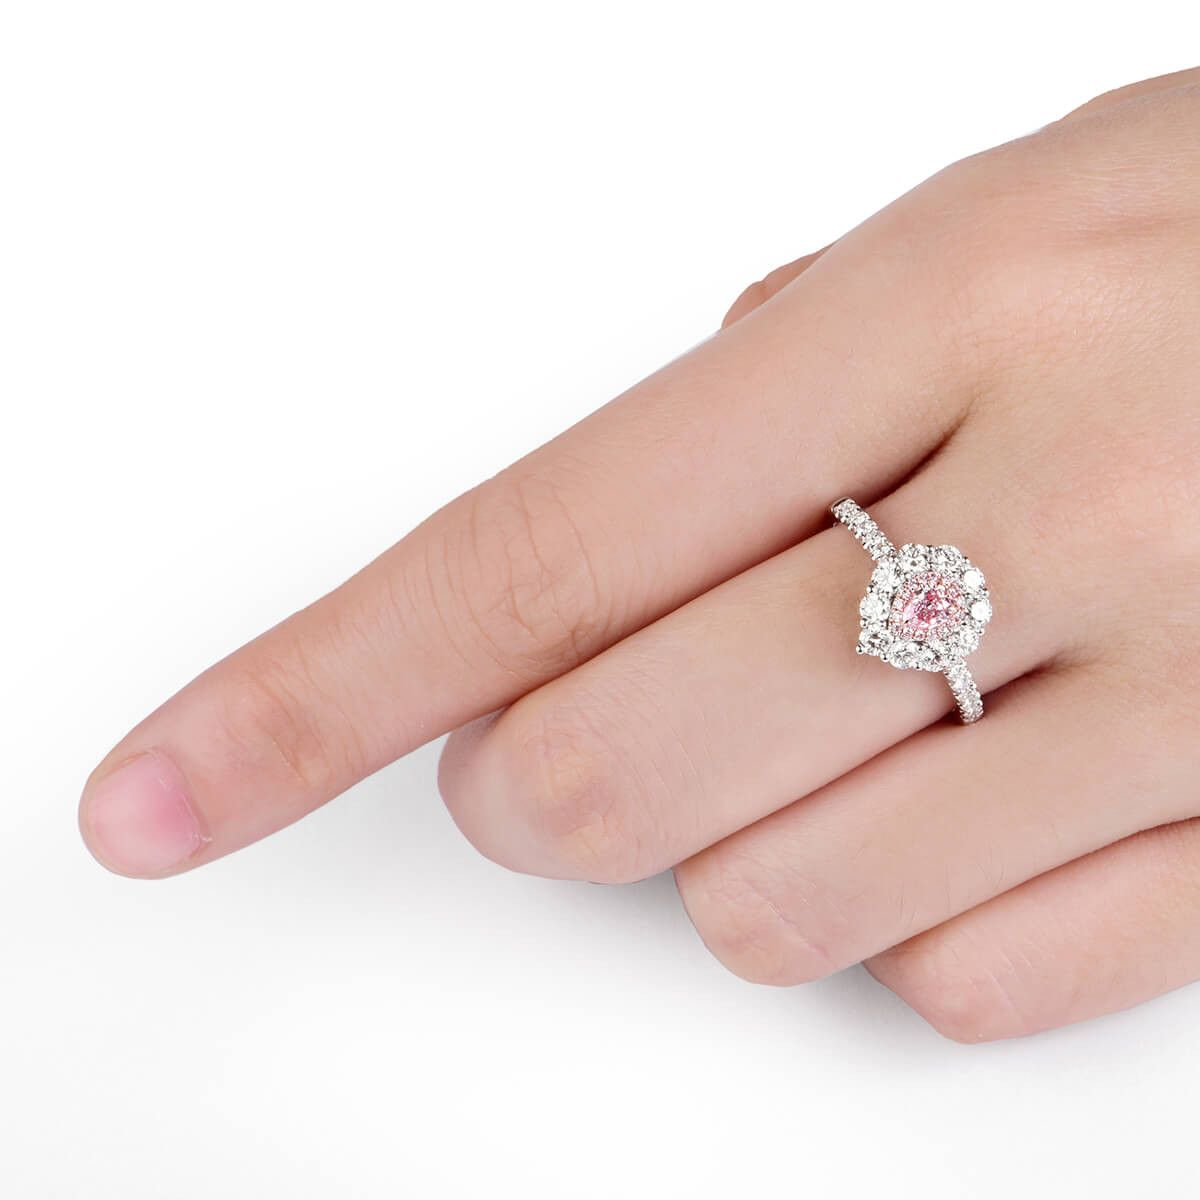 Fancy Pink Diamond Ring, 0.93 carat, SI2 Clarity, GIA 1186341910